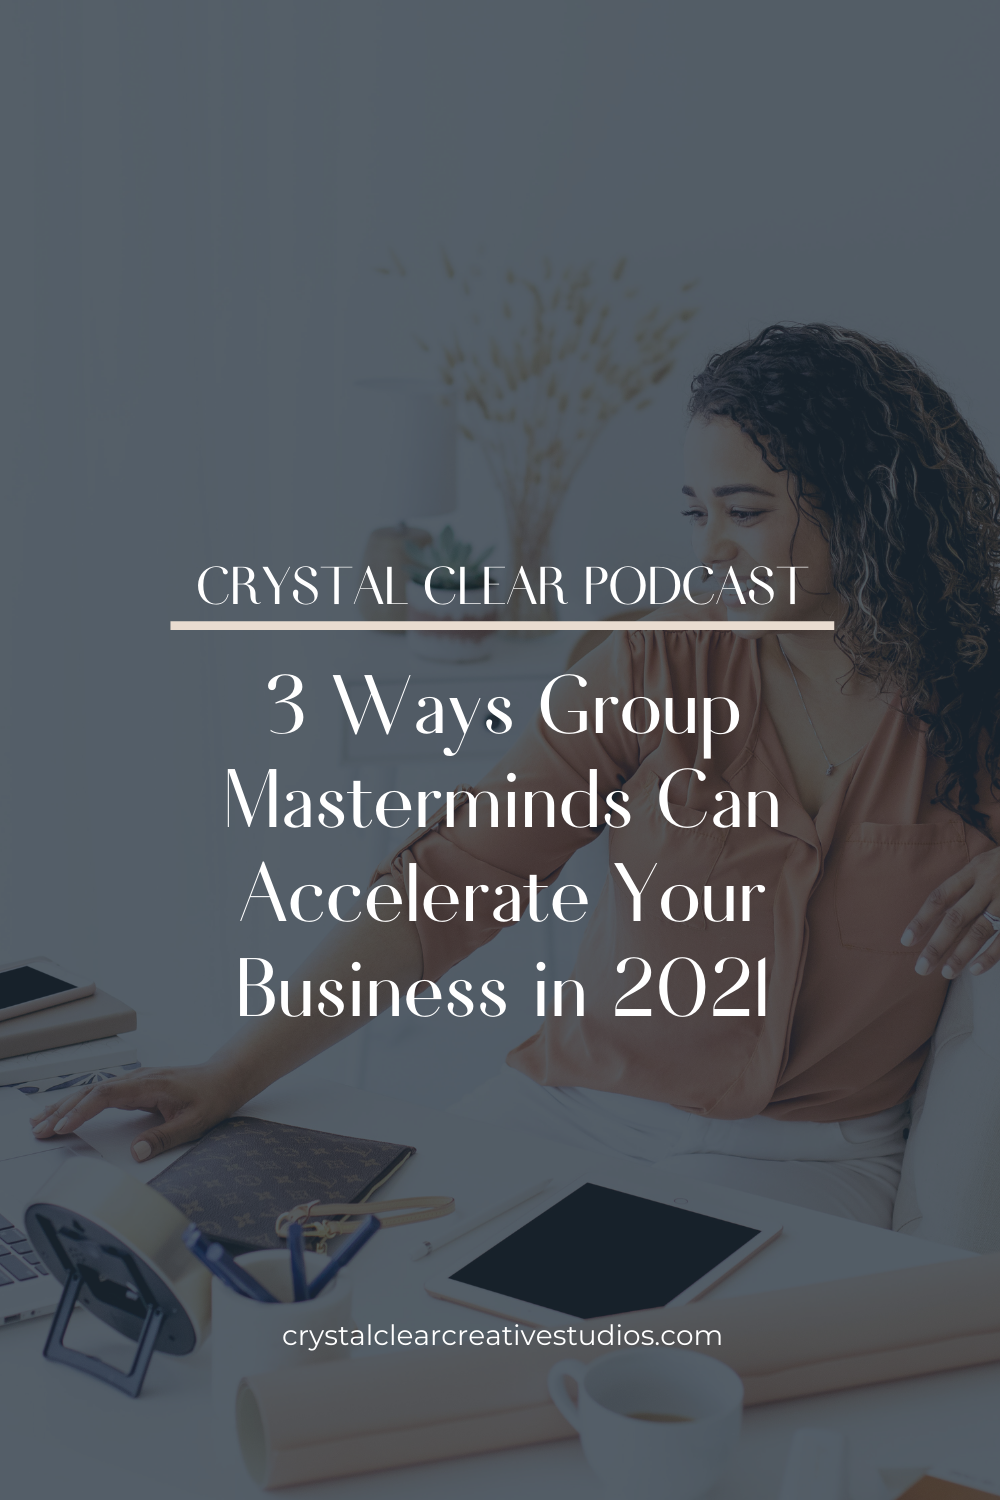 3 ways group masterminds can accelerate your business in 2021